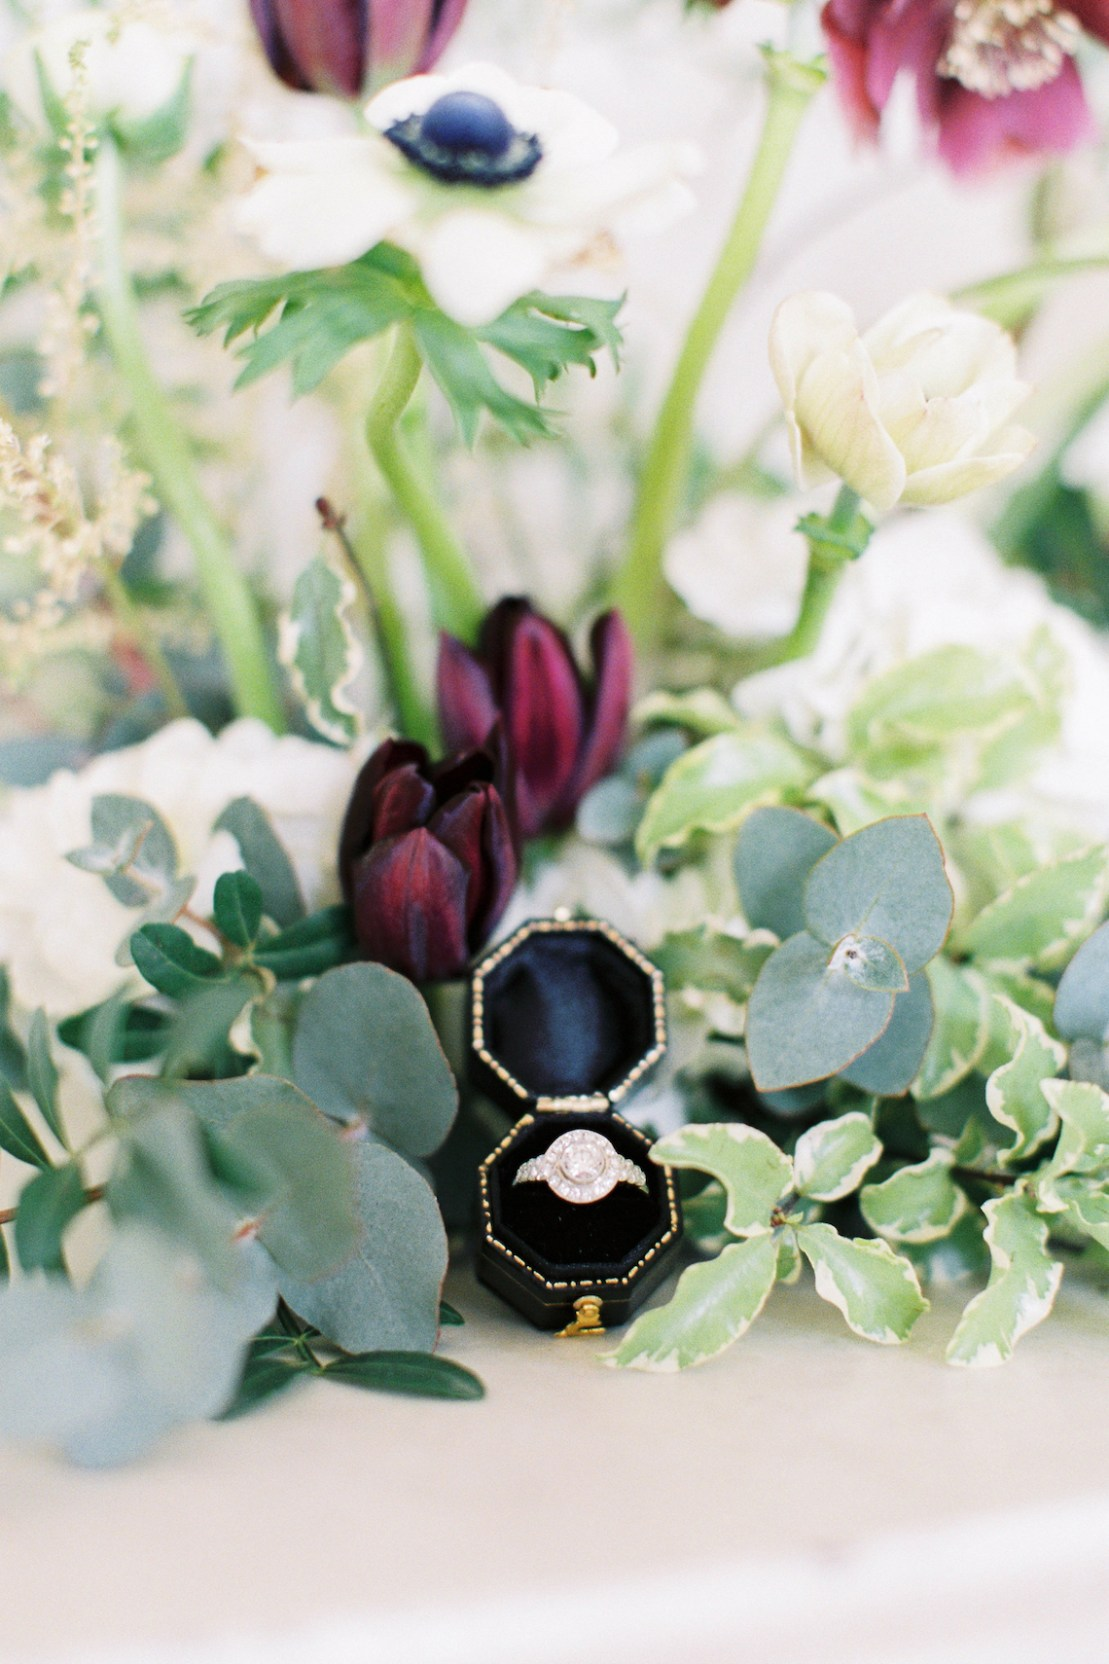 Luxurious-Coco-Chanel-Inspired-Wedding-Ideas-Bowtie-Belle-Photography-6-min.jpg